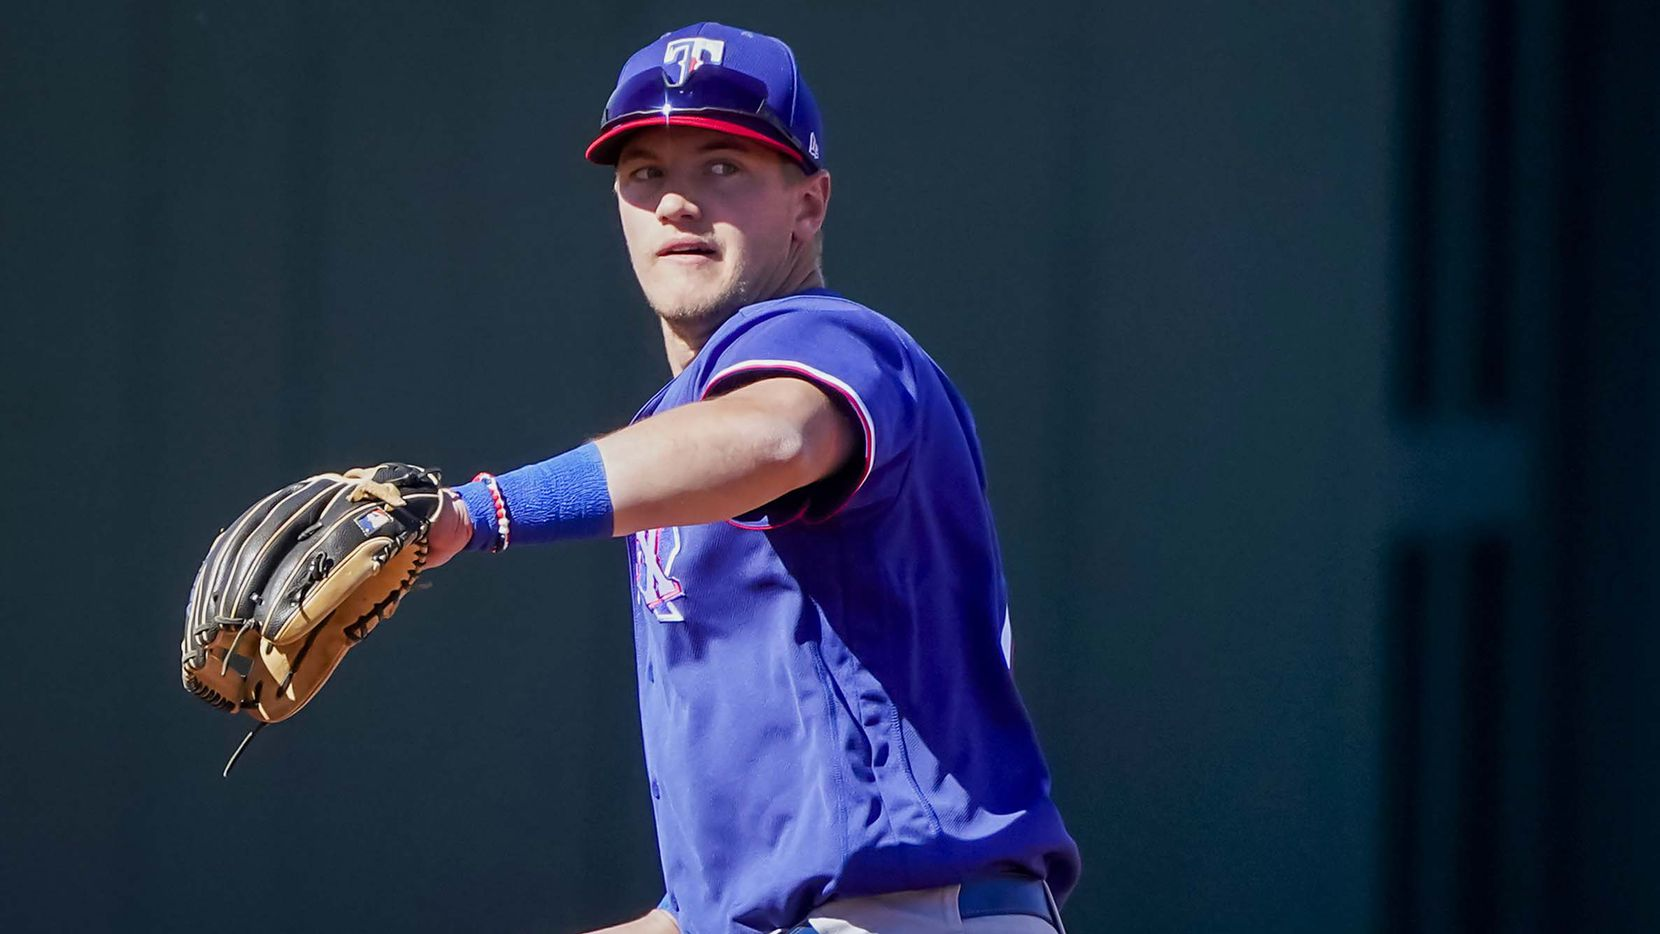 Texas Rangers infielder Josh Jung warms up at third base during the fifth inning of a spring training game against the Kansas City Royals at Surprise Stadium on Sunday, Feb. 28, 2021, in Surprise, Ariz.